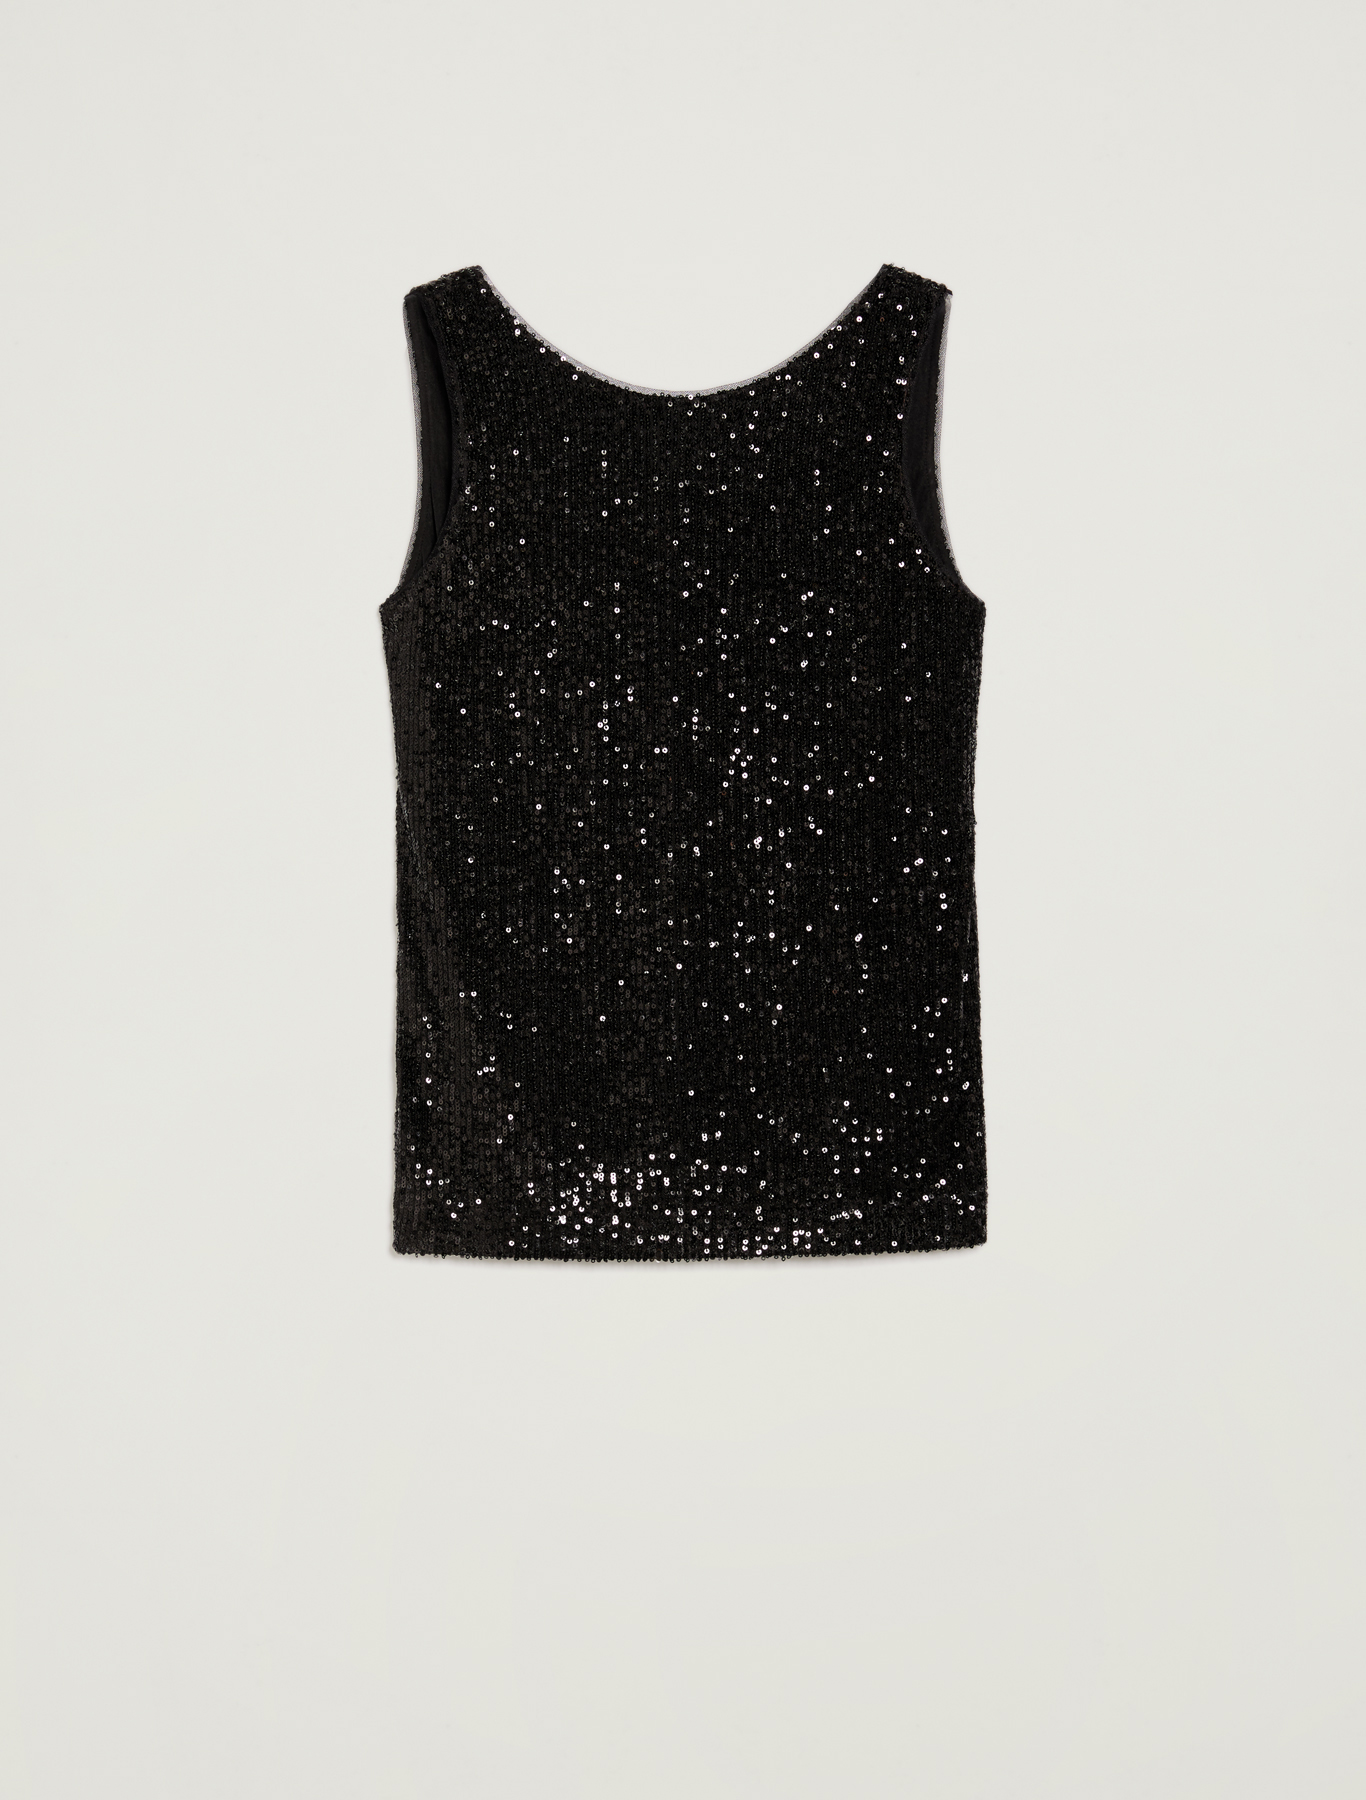 Sequinned top - black - pennyblack